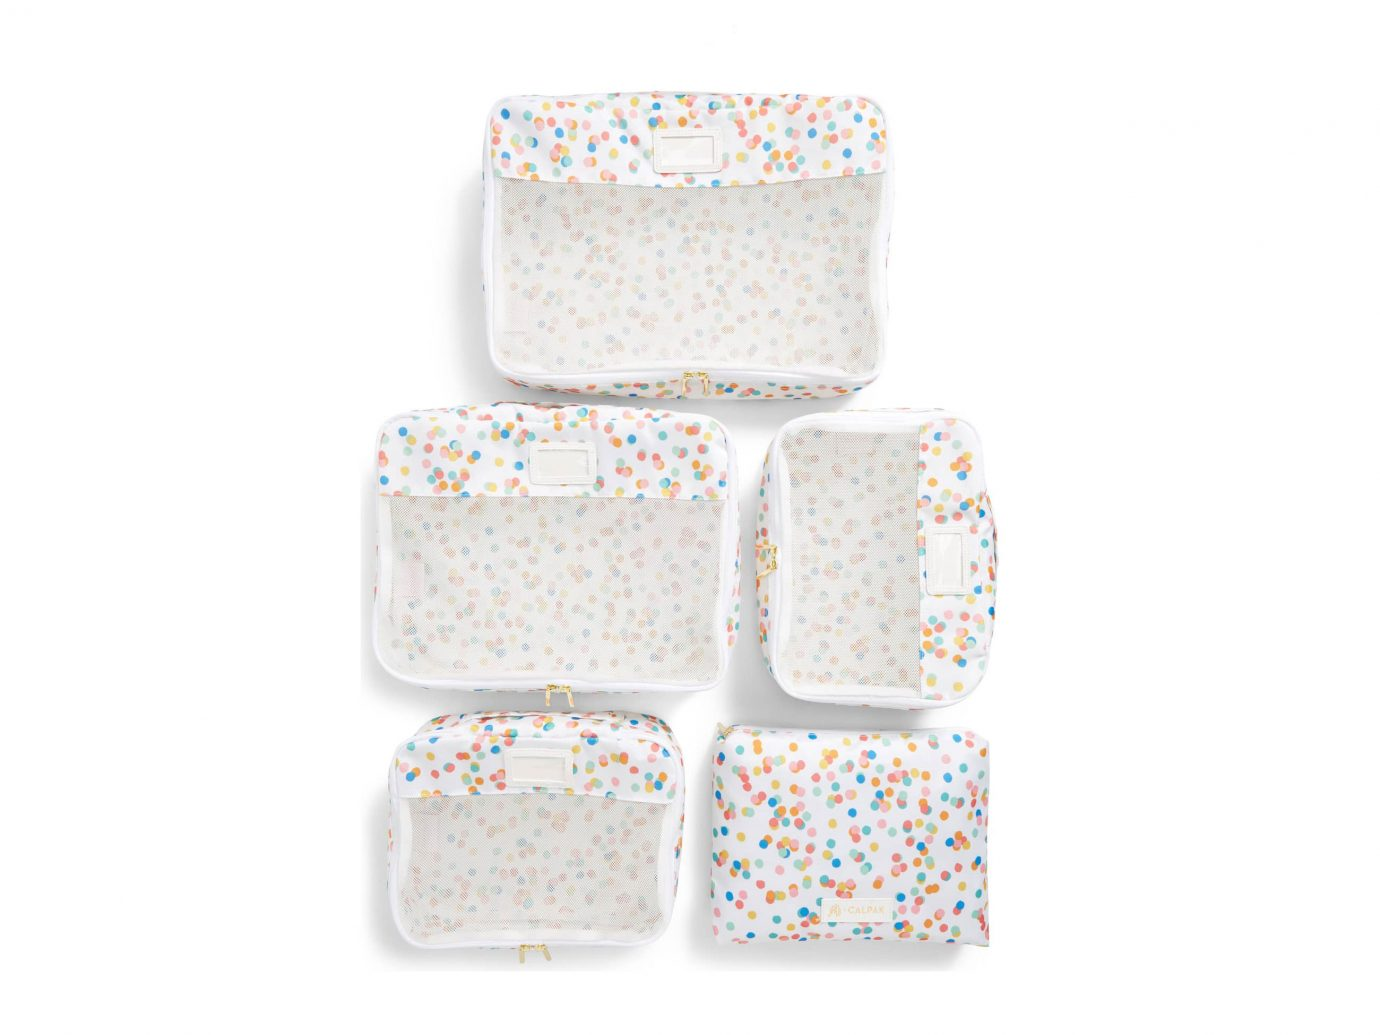 Calpak x Oh Joy! Packing Cubes (Set of 5)